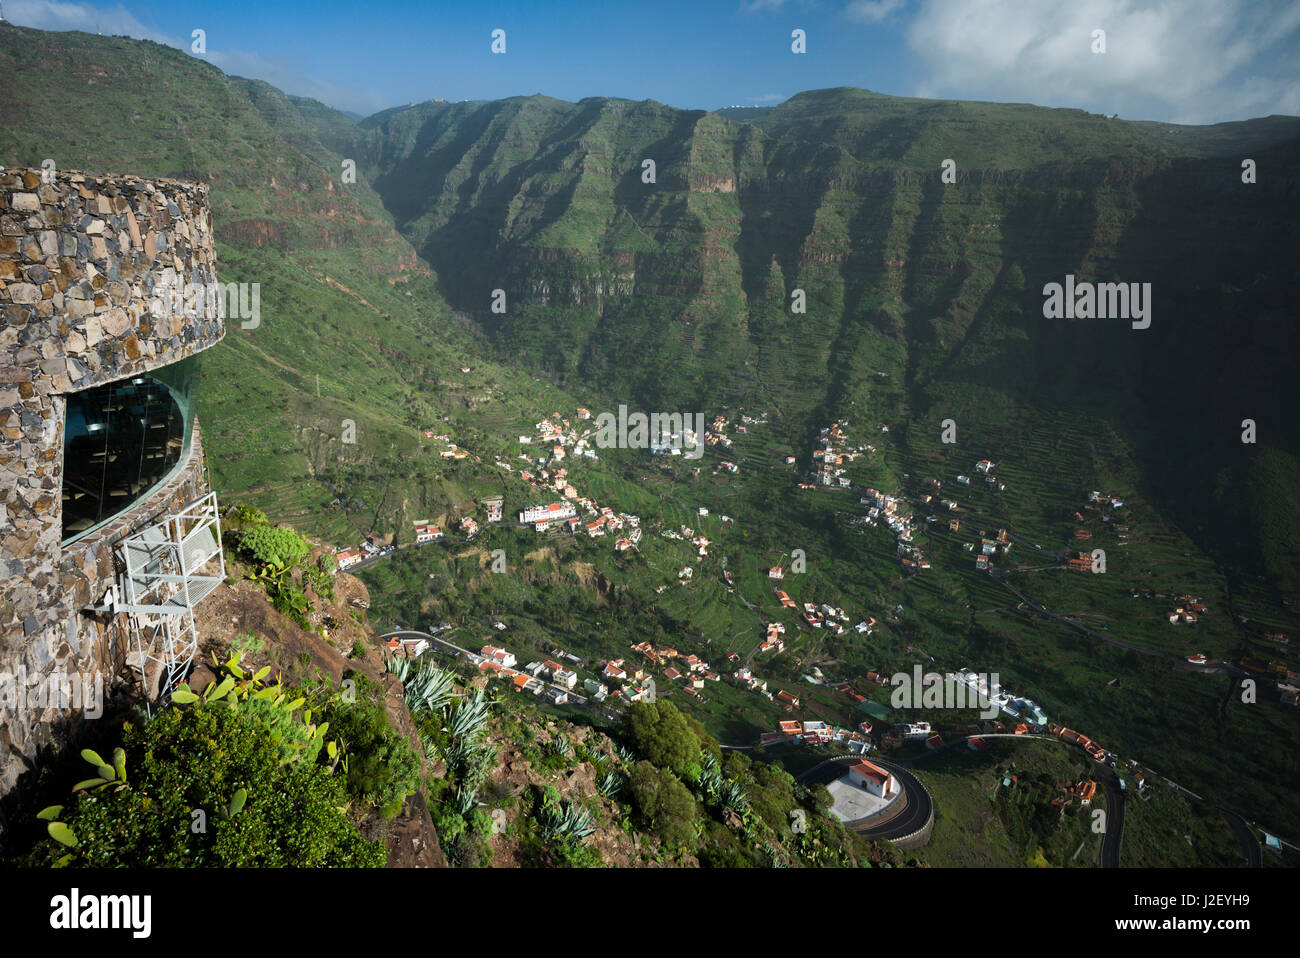 Spain, Canary Islands, La Gomera, Valle Gran Rey, elevated valley view - Stock Image